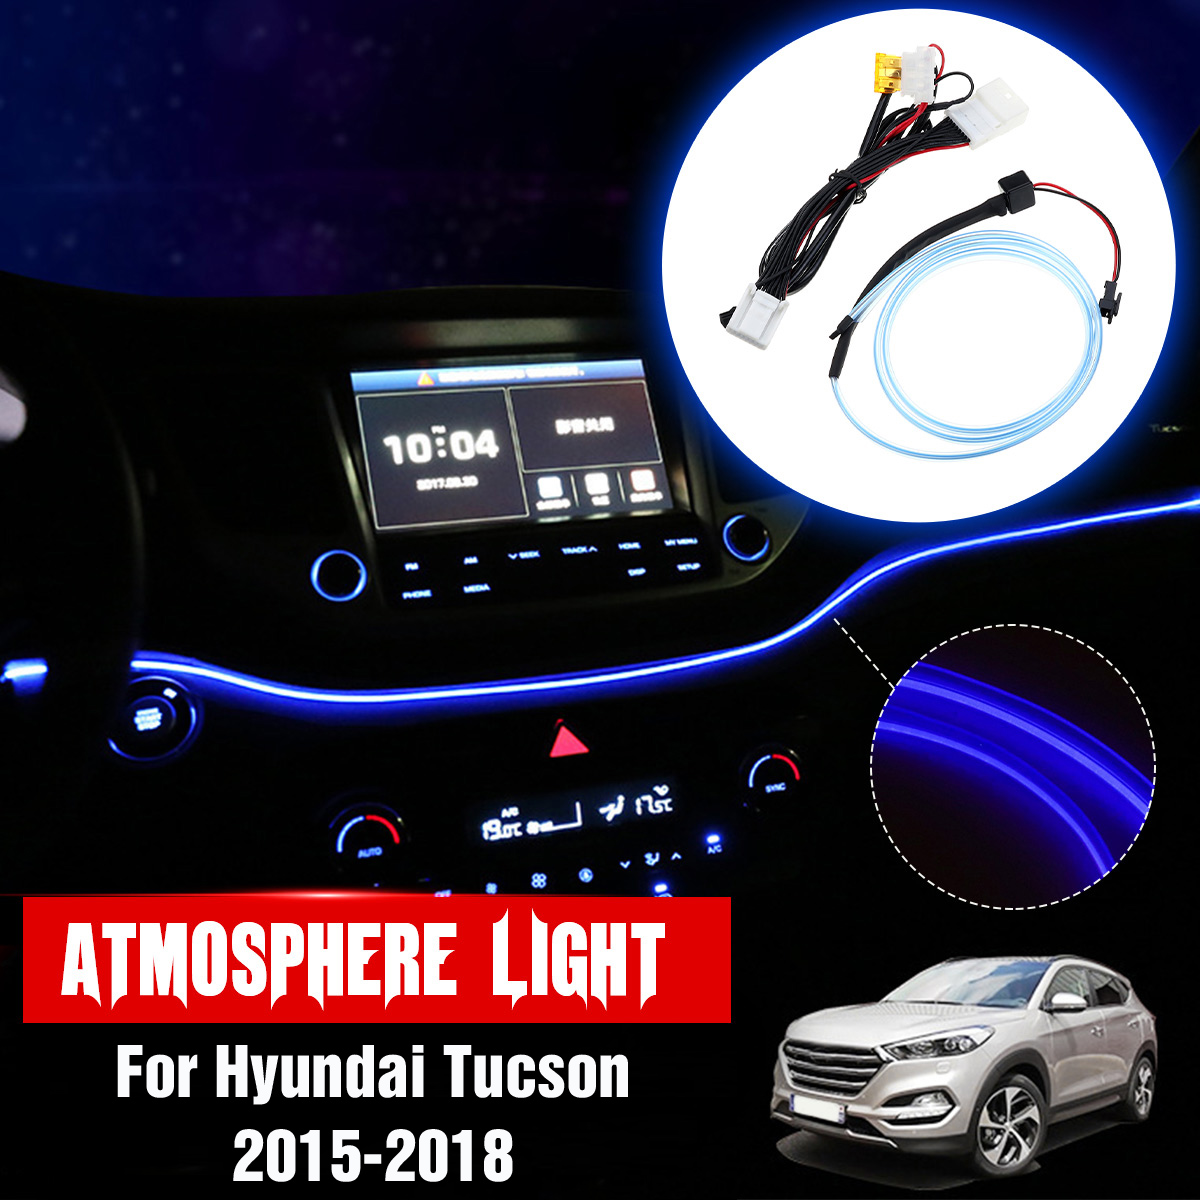 Car Styling Carbon Style Auto Accessories Headlight Switch Buttons Frame Cover Trim for Hyundai Tucson 2016-2019 Left Hand Drive ONLY